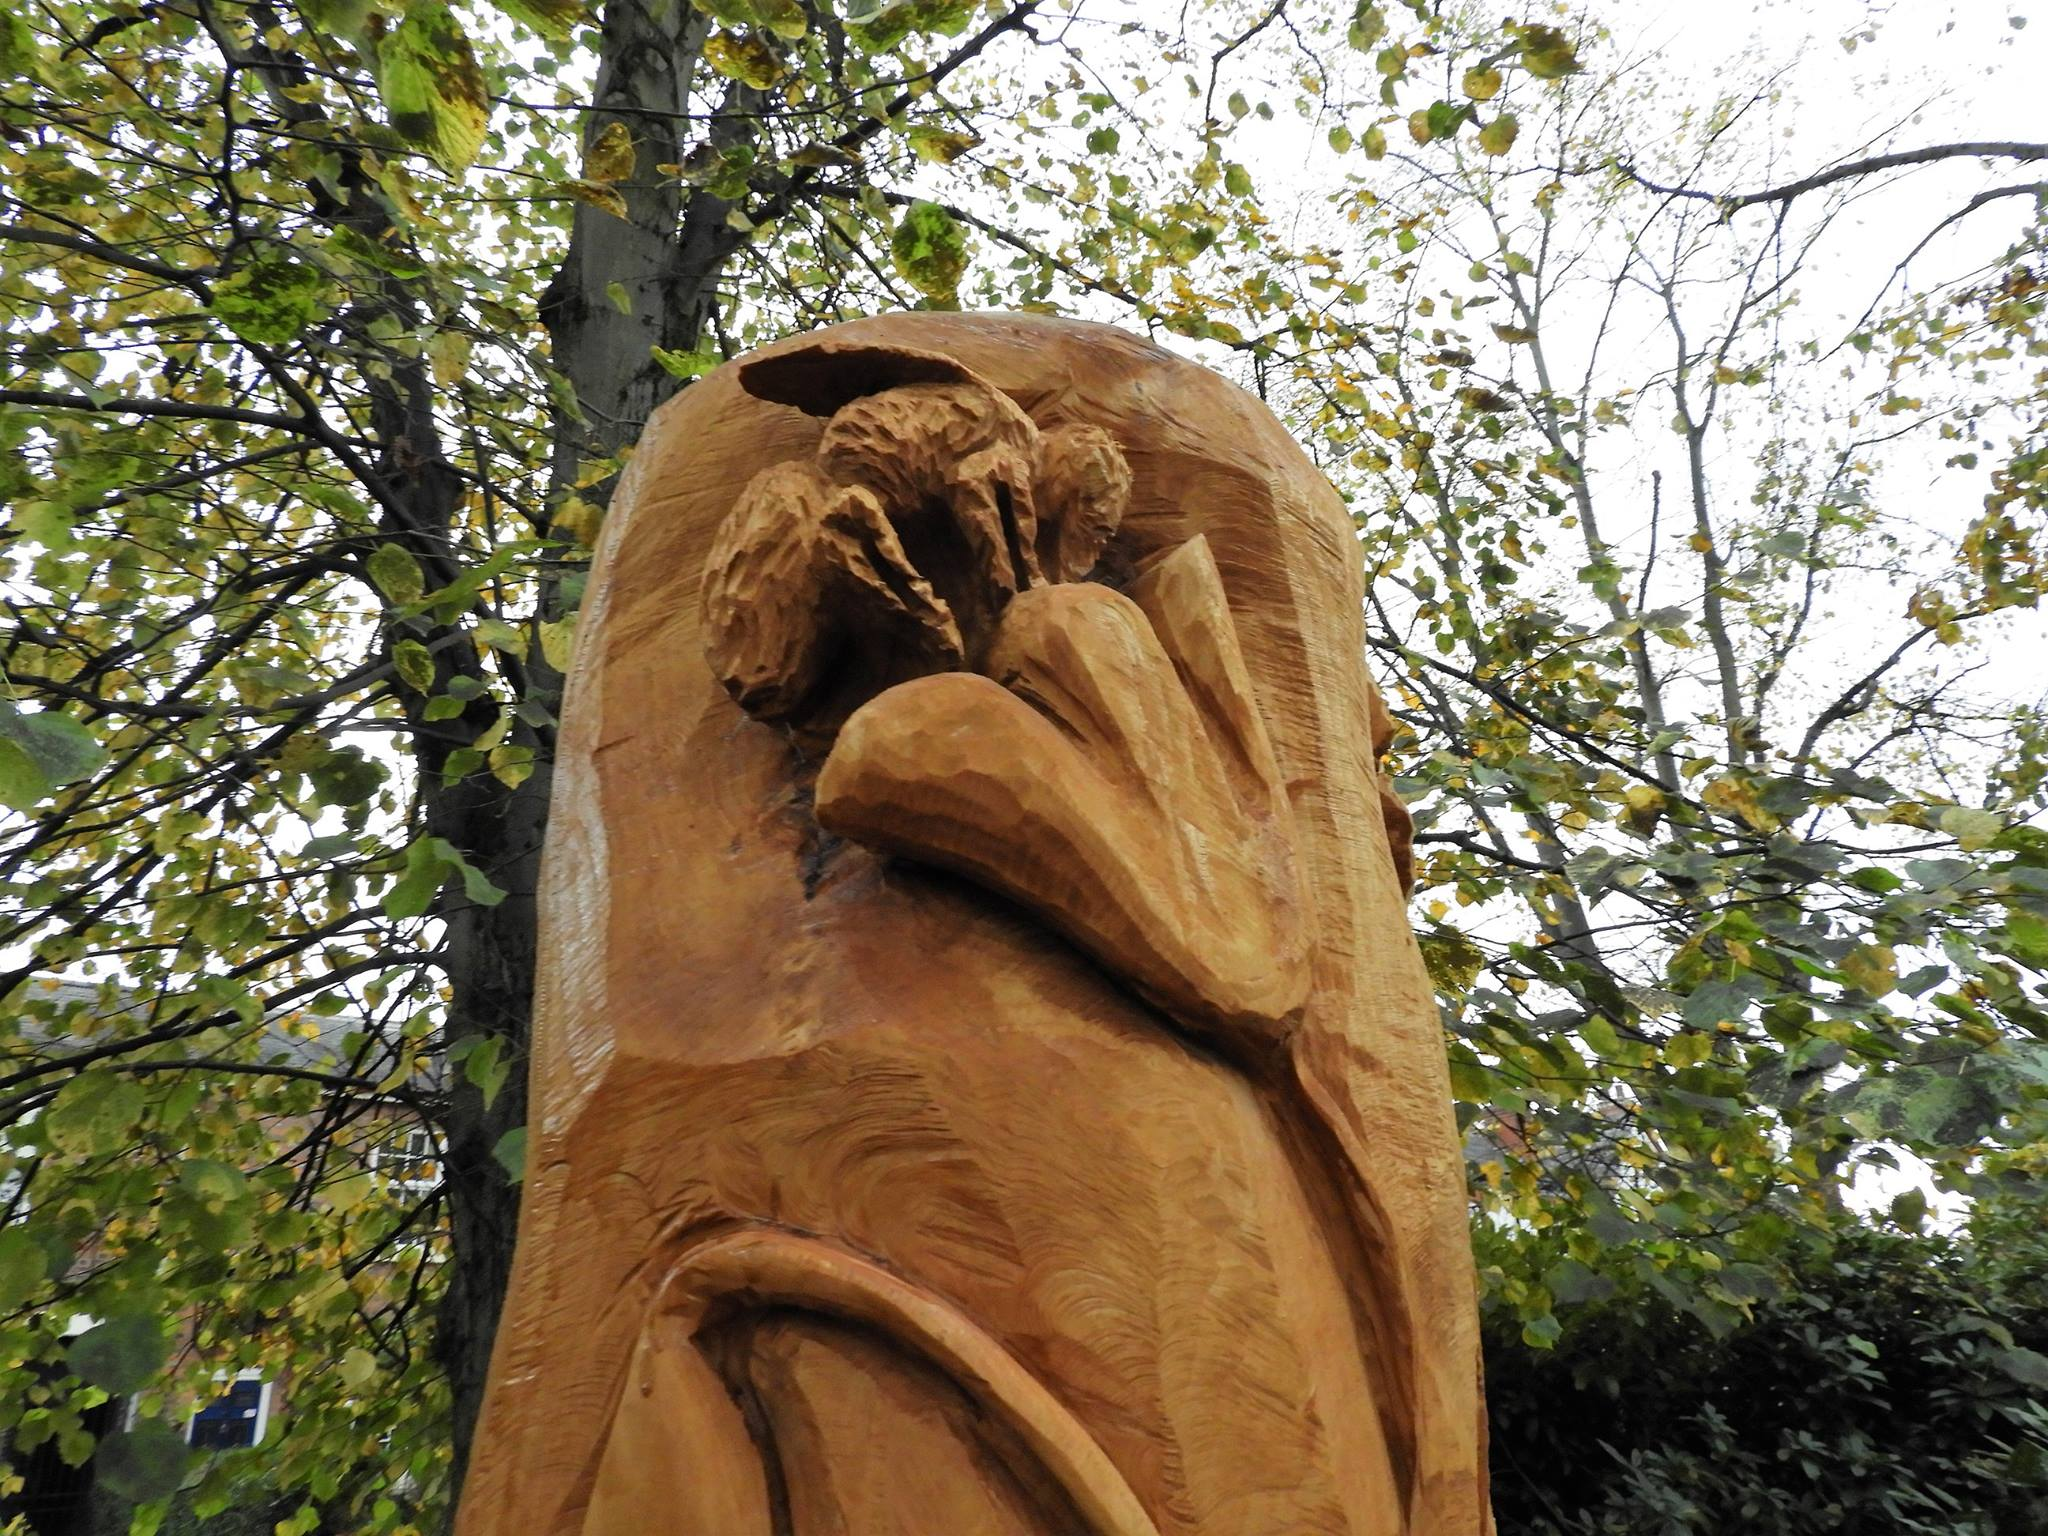 GVP invites you to official opening of new Contemplation Sculpture